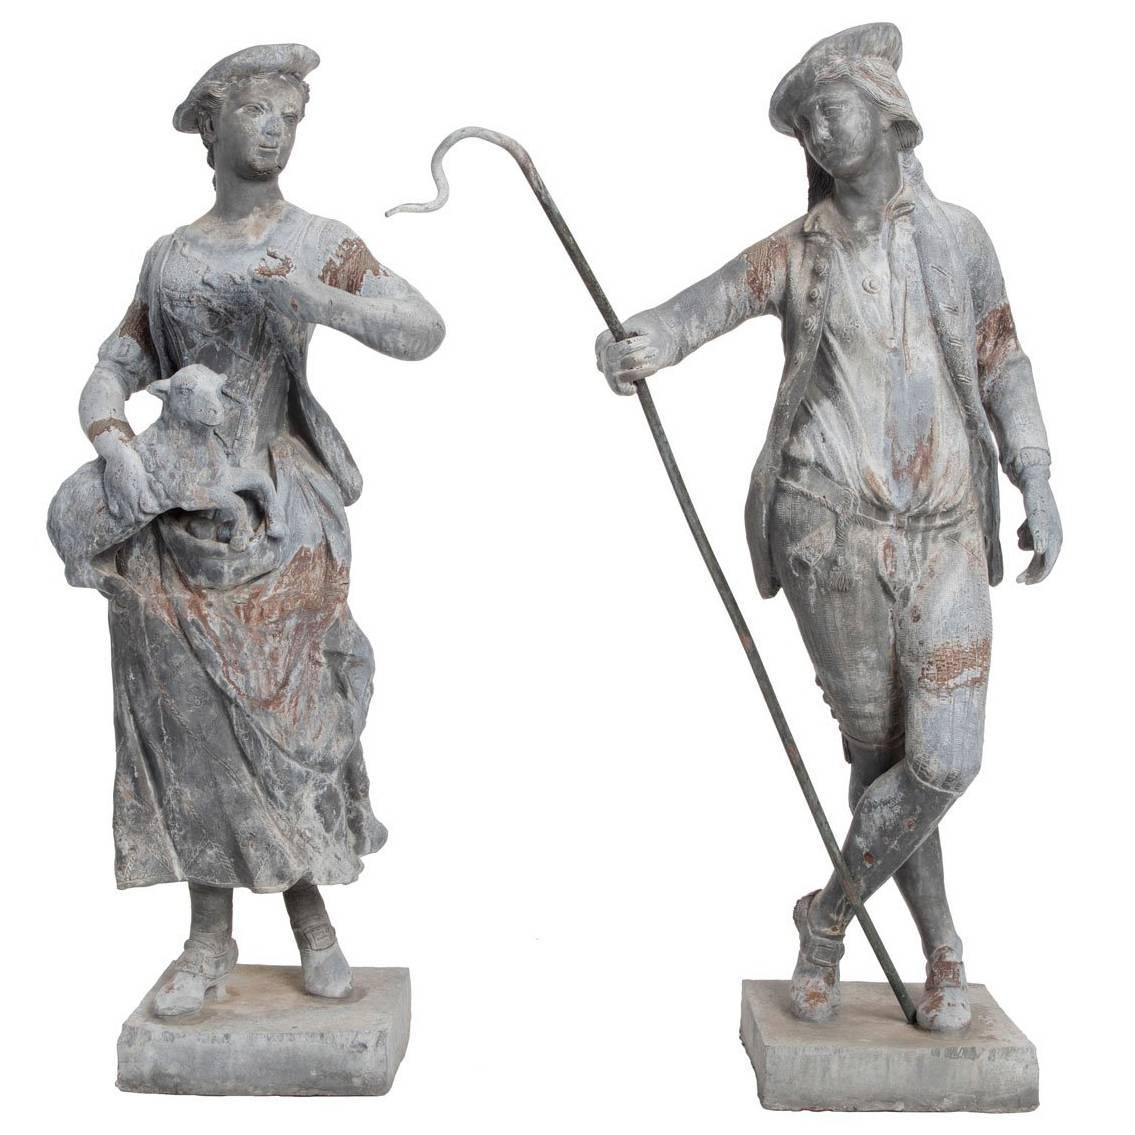 Shepherd and shepherdess garden statues for sale at 1stdibs for Lawn ornaments for sale